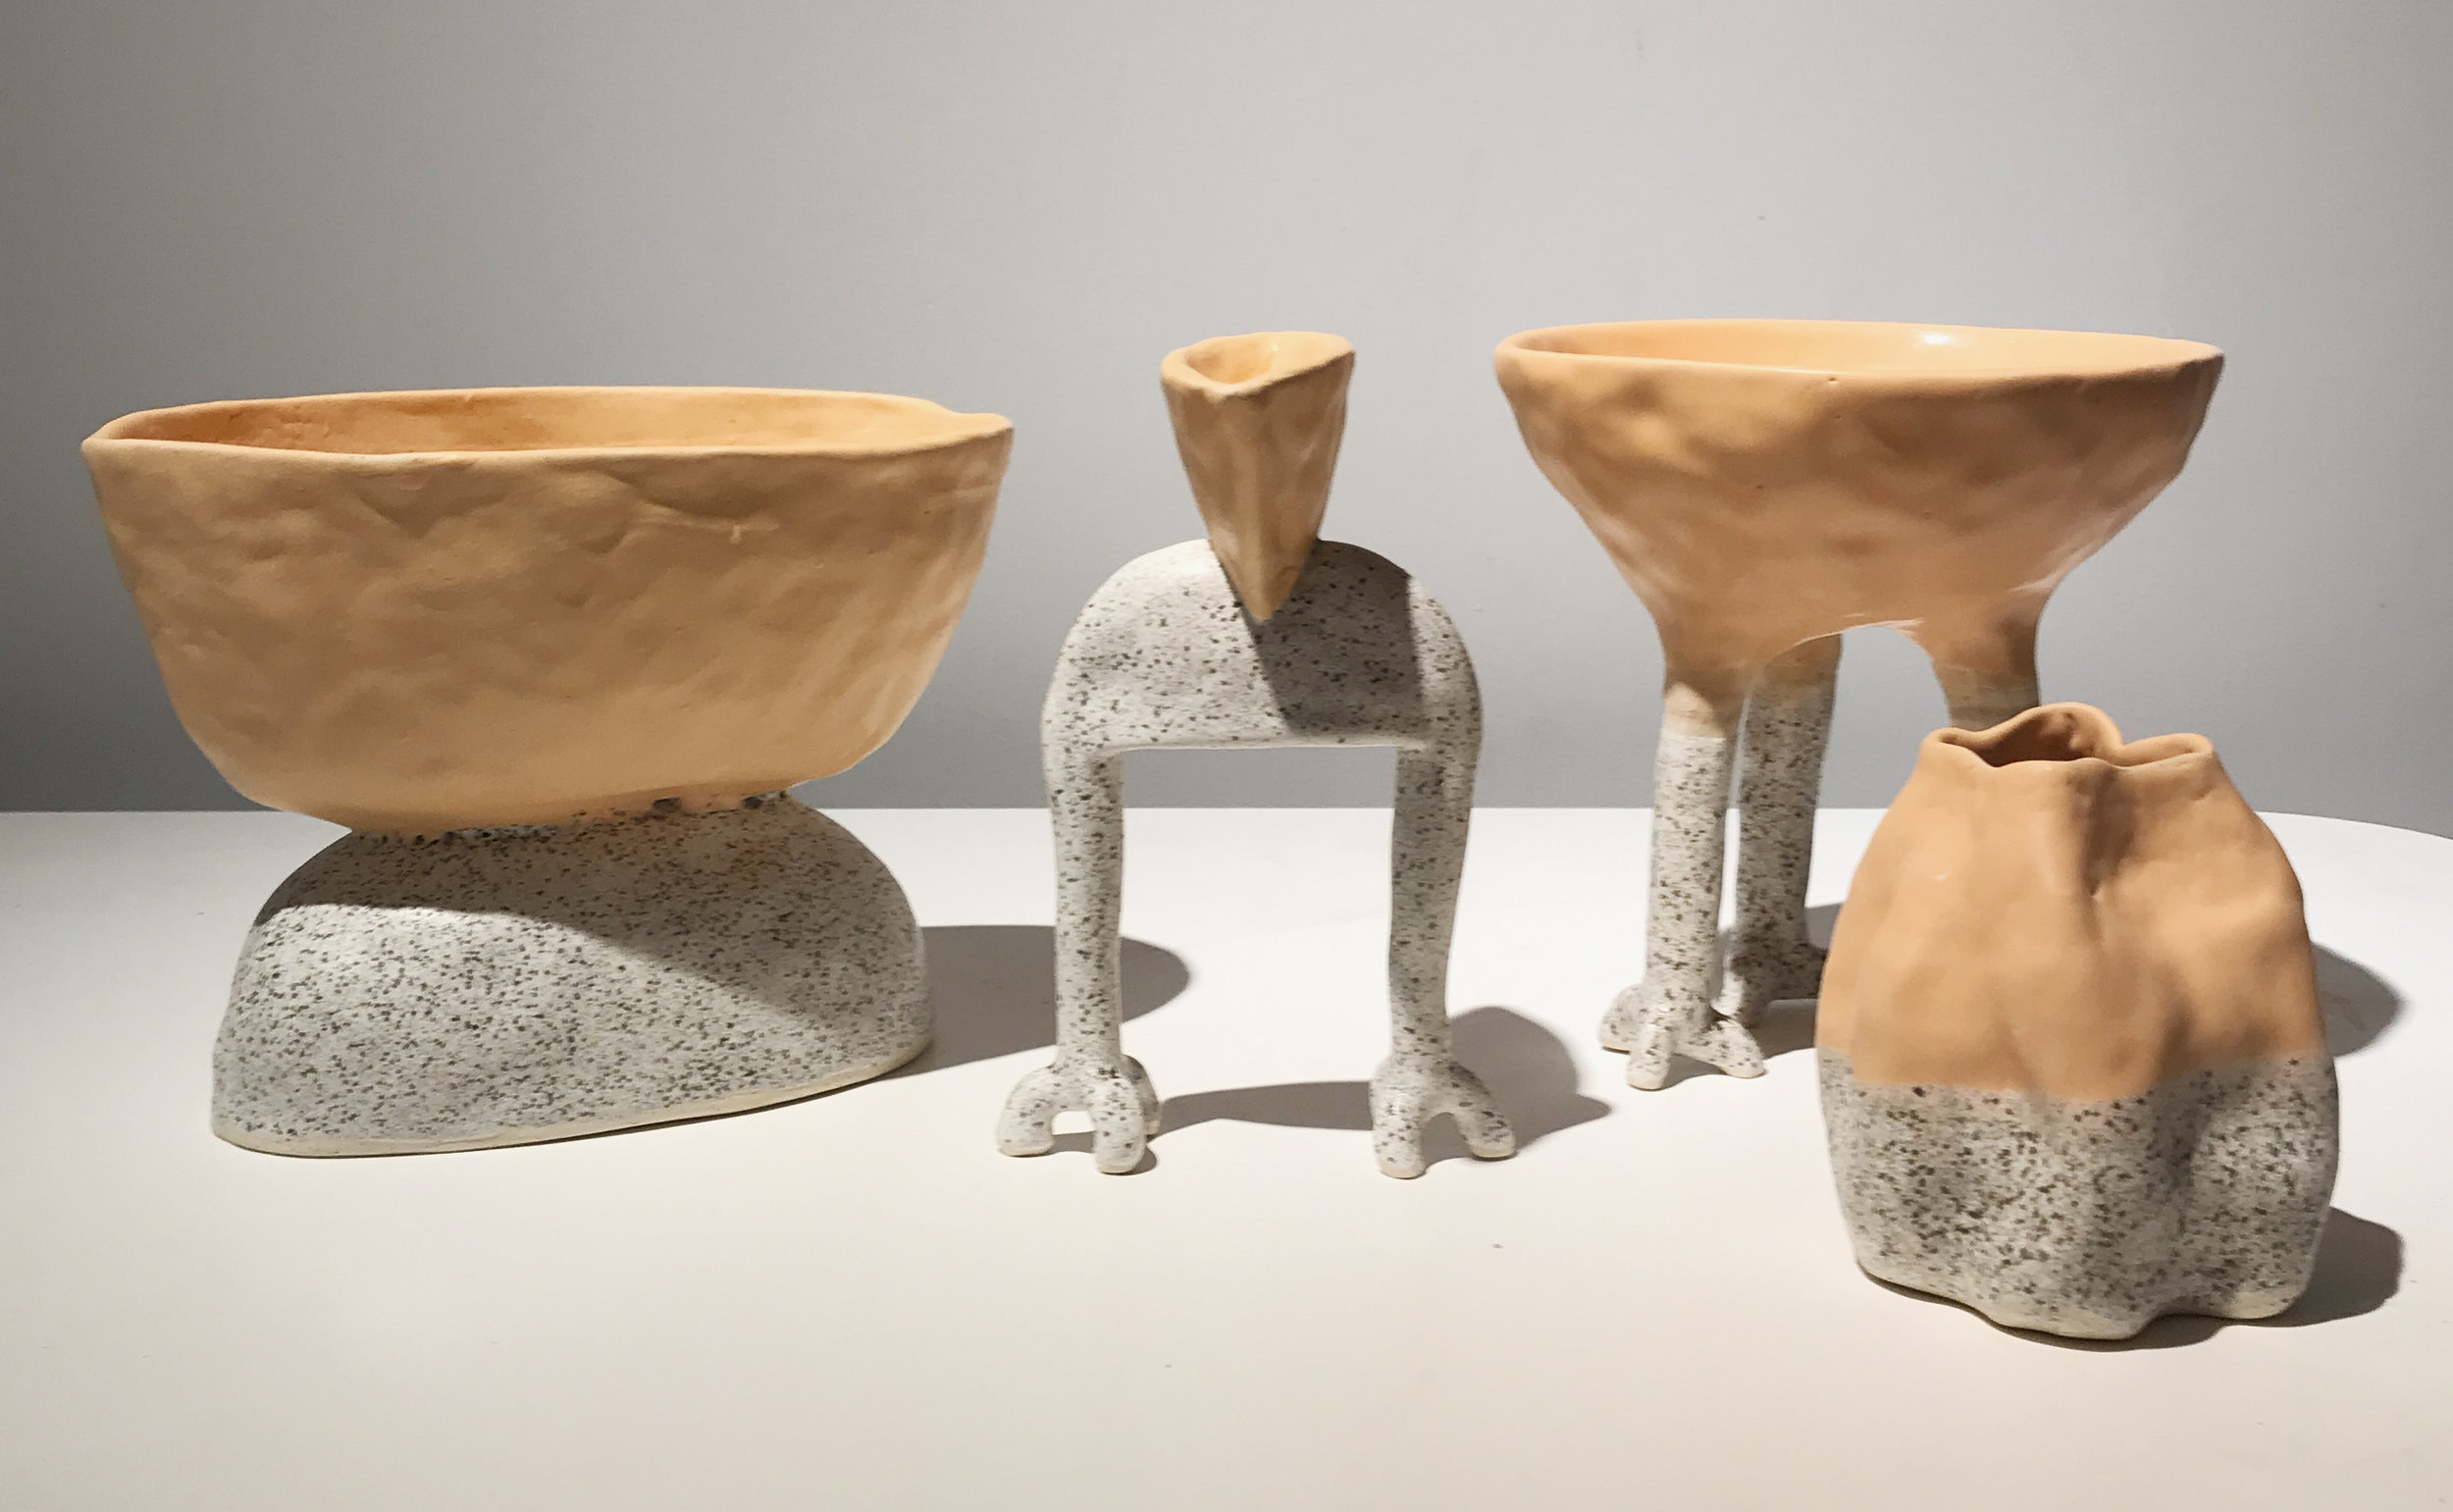 Vessel Series in Thai Iced Tea and Salt N' Peppa glazes